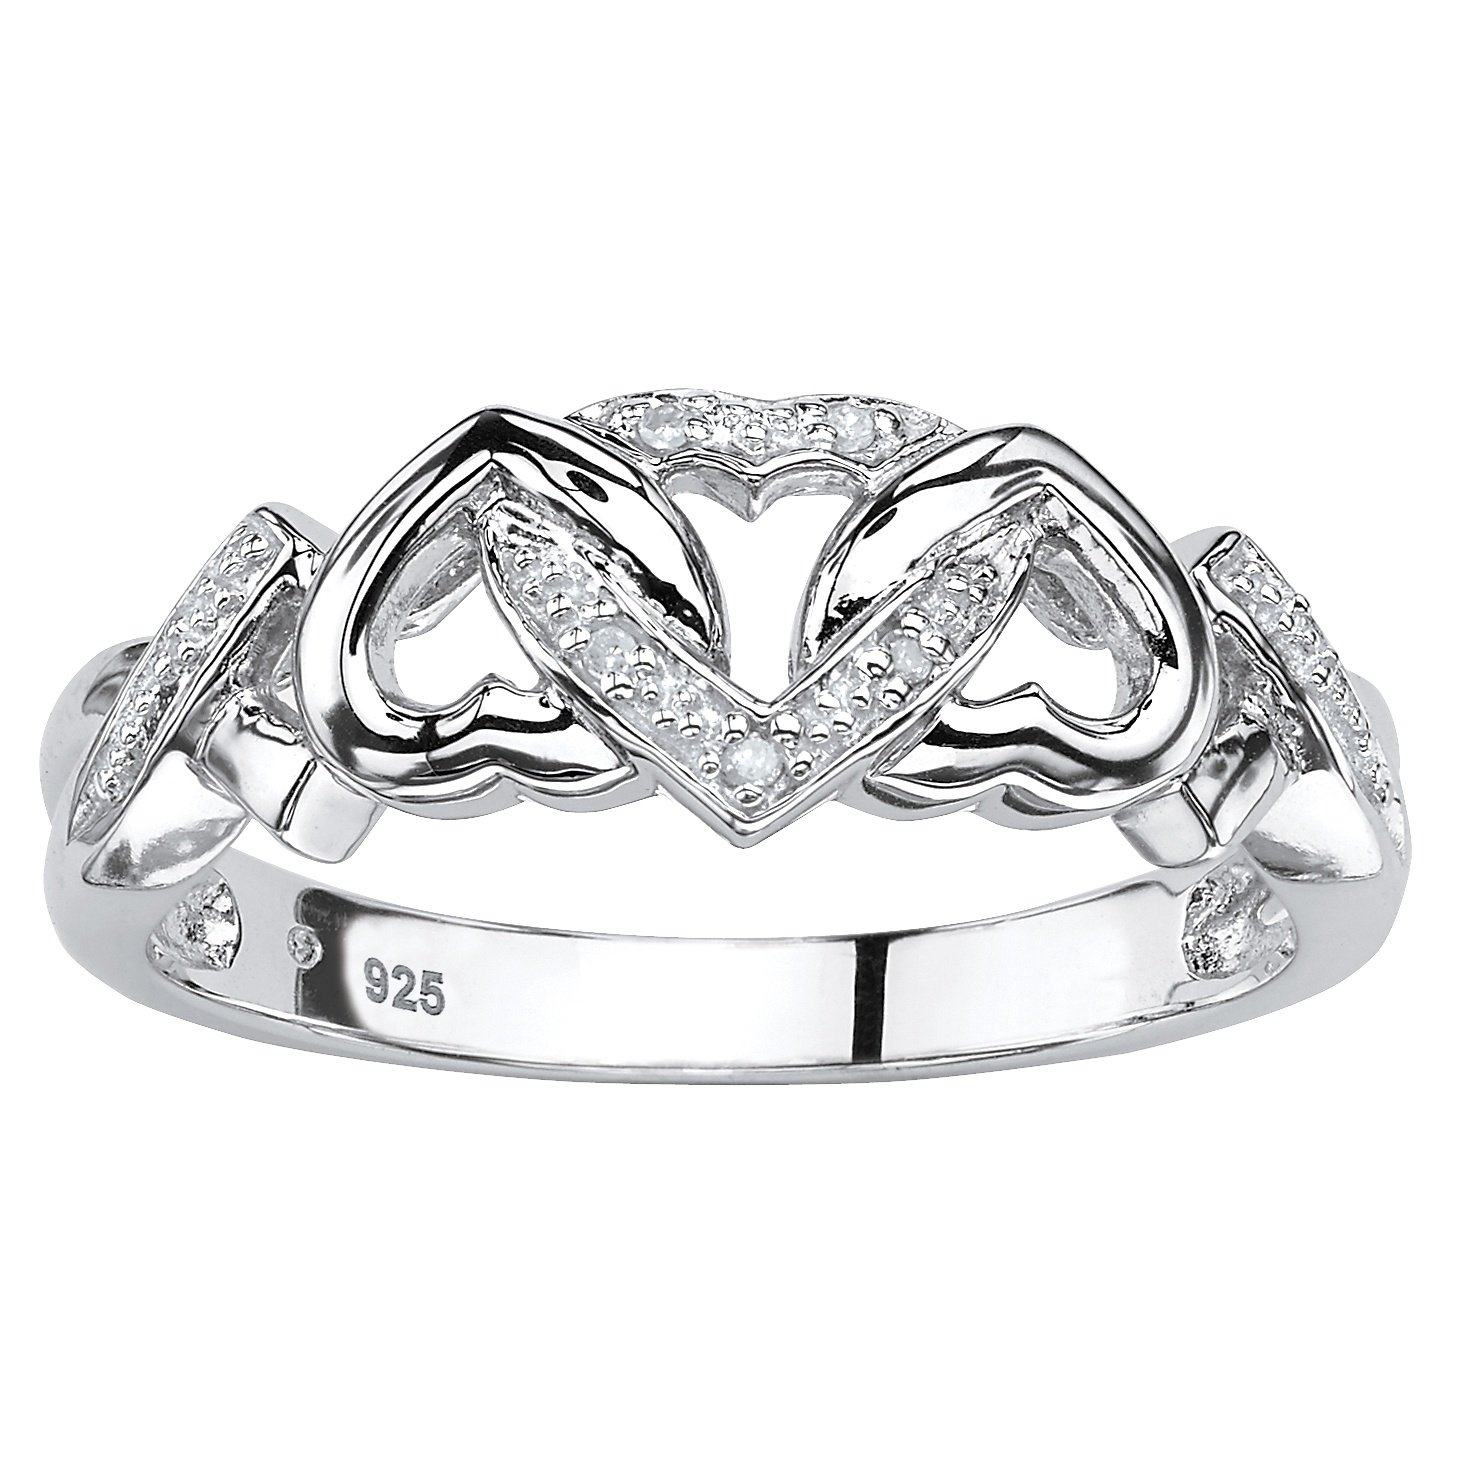 Platinum over Sterling Silver Genuine Diamond Accent Interlocking Heart Promise Ring Size 7 by Palm Beach Jewelry